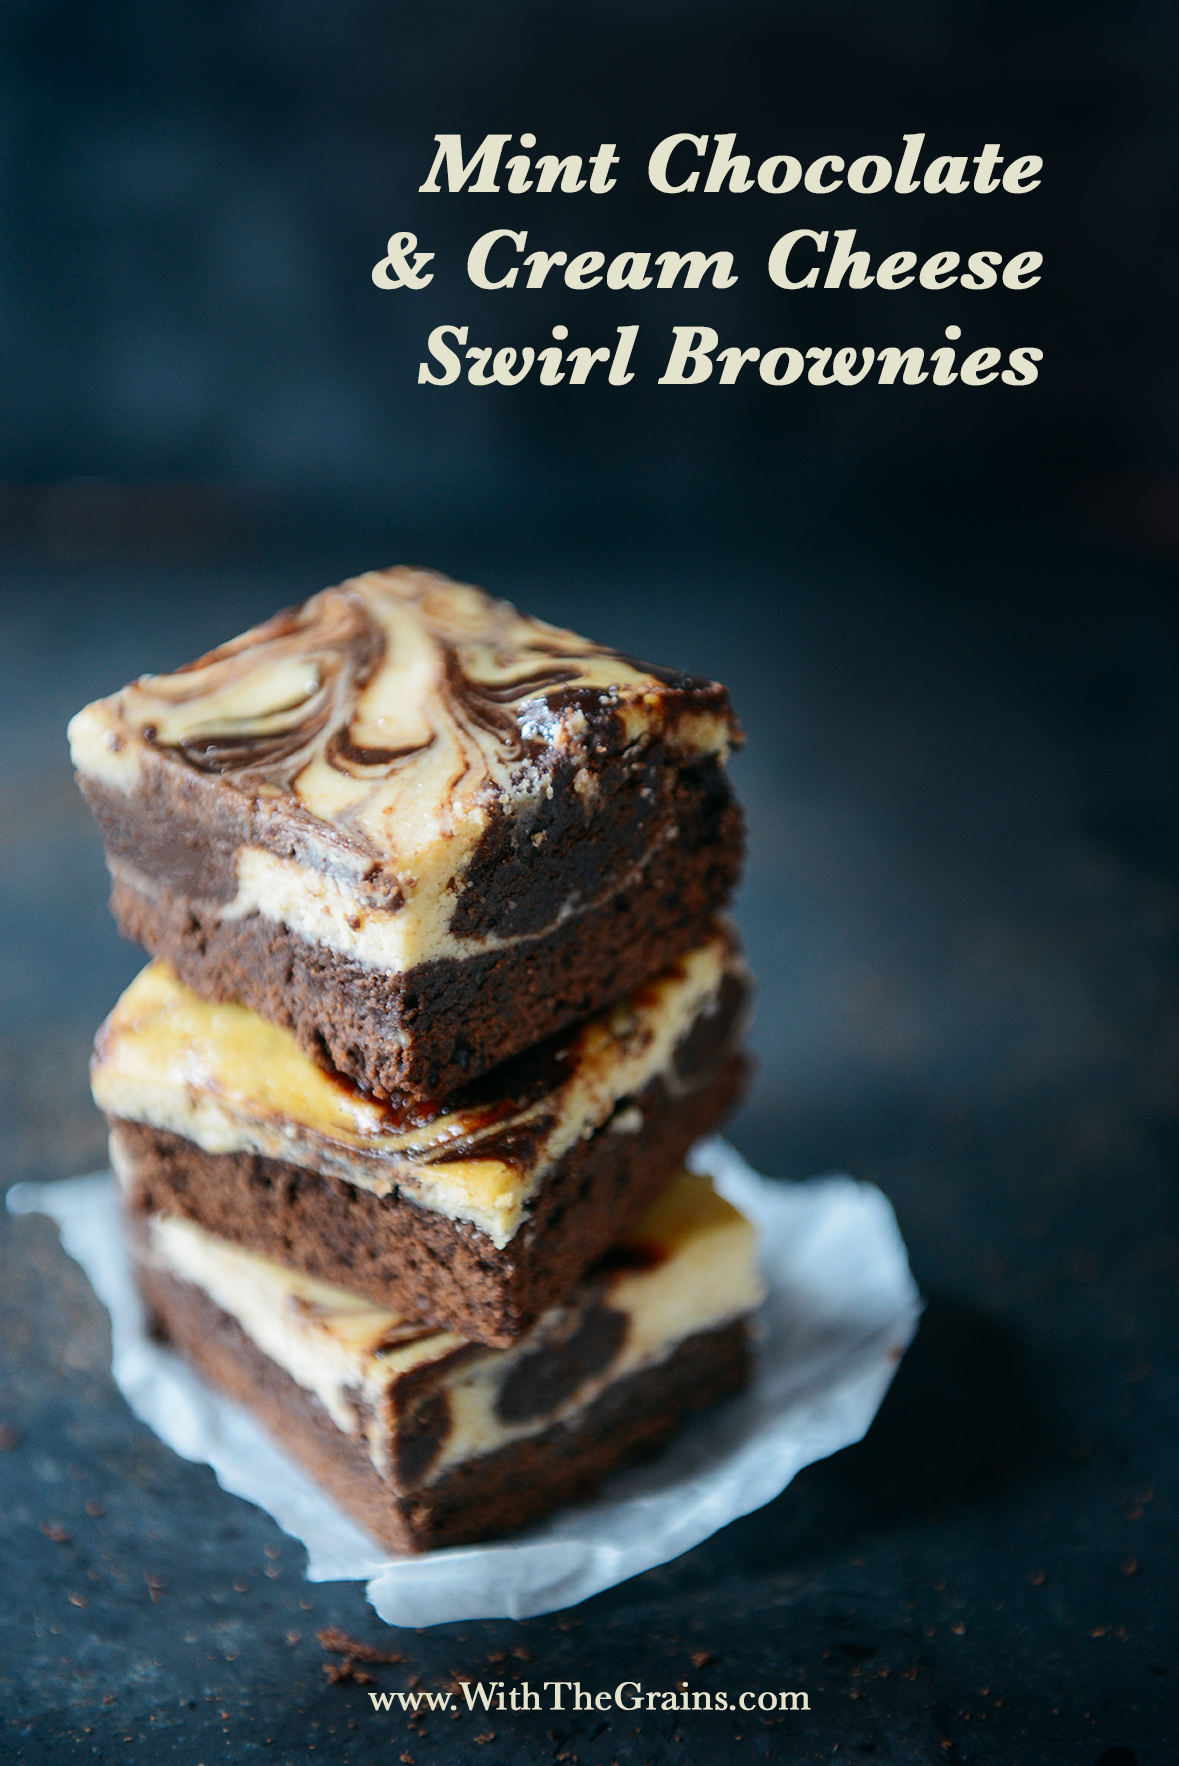 Self Filled Brownie Bars // www.WithTheGrains.com